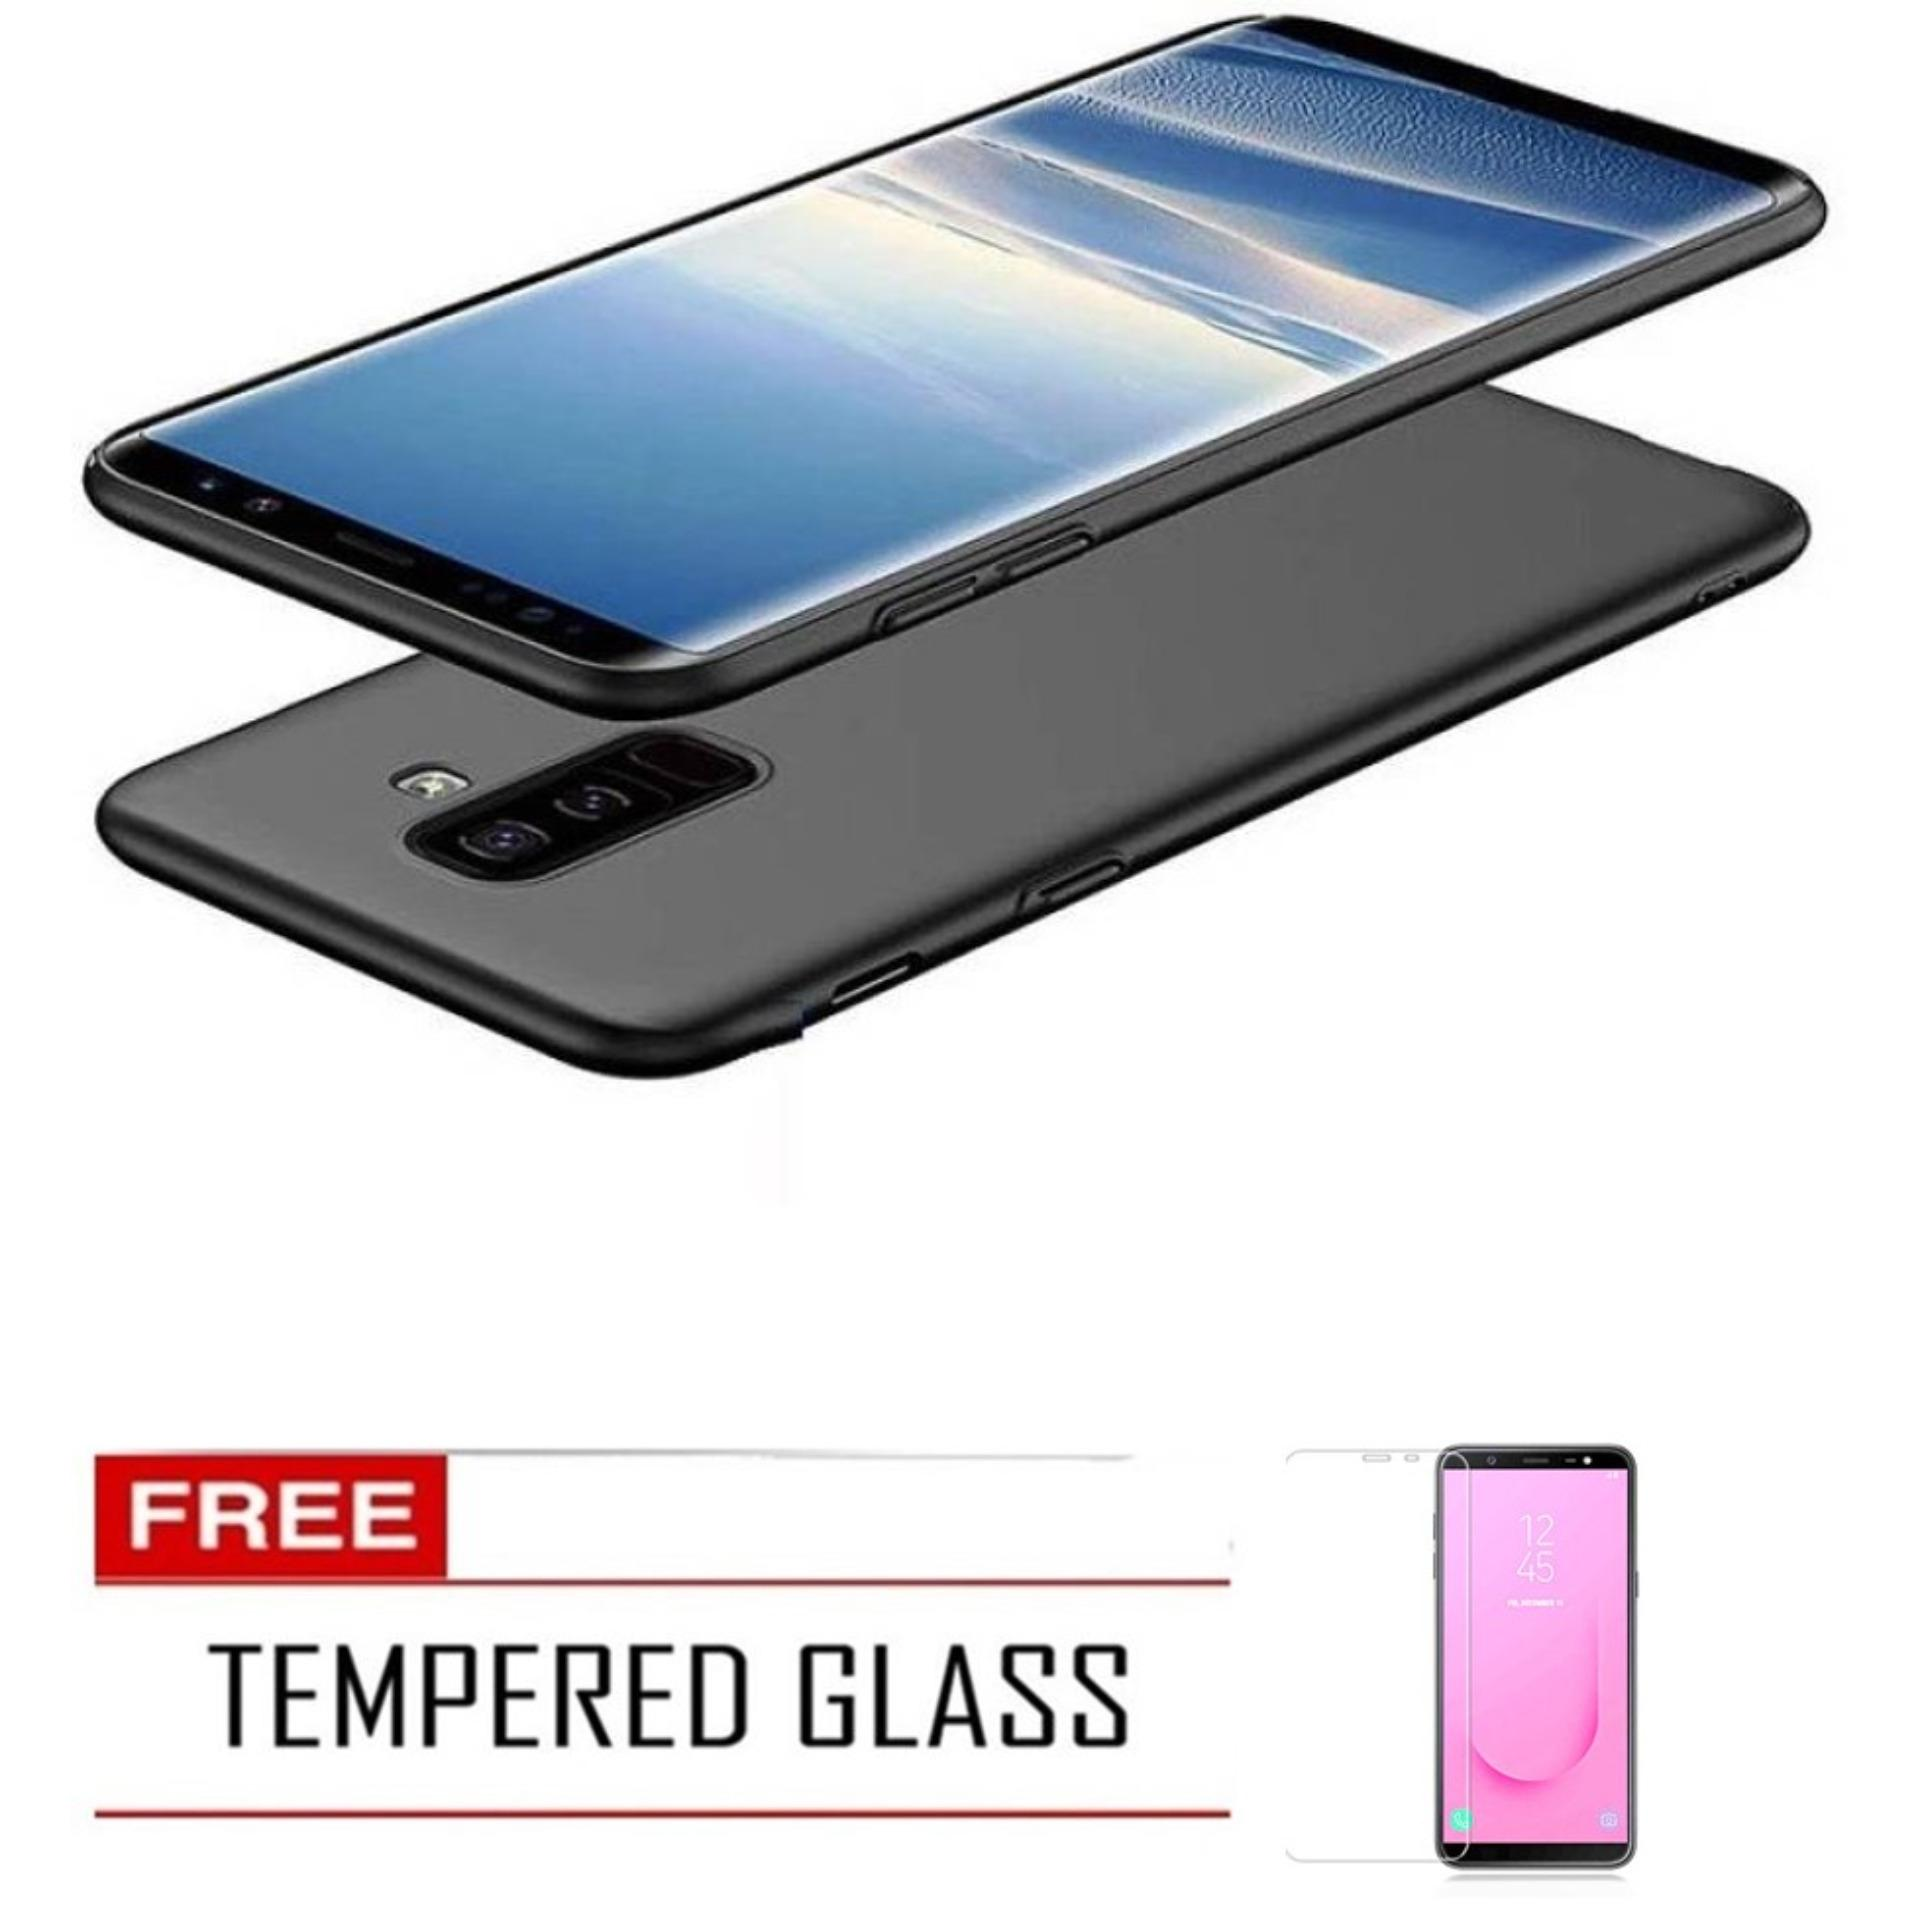 Case Ultra Thin Soft TPU Black Silicone Matte Frosted Anti-fingerprint Back Cover For Samsung Galaxy J8 2018 – Black FREE Tempered Glass